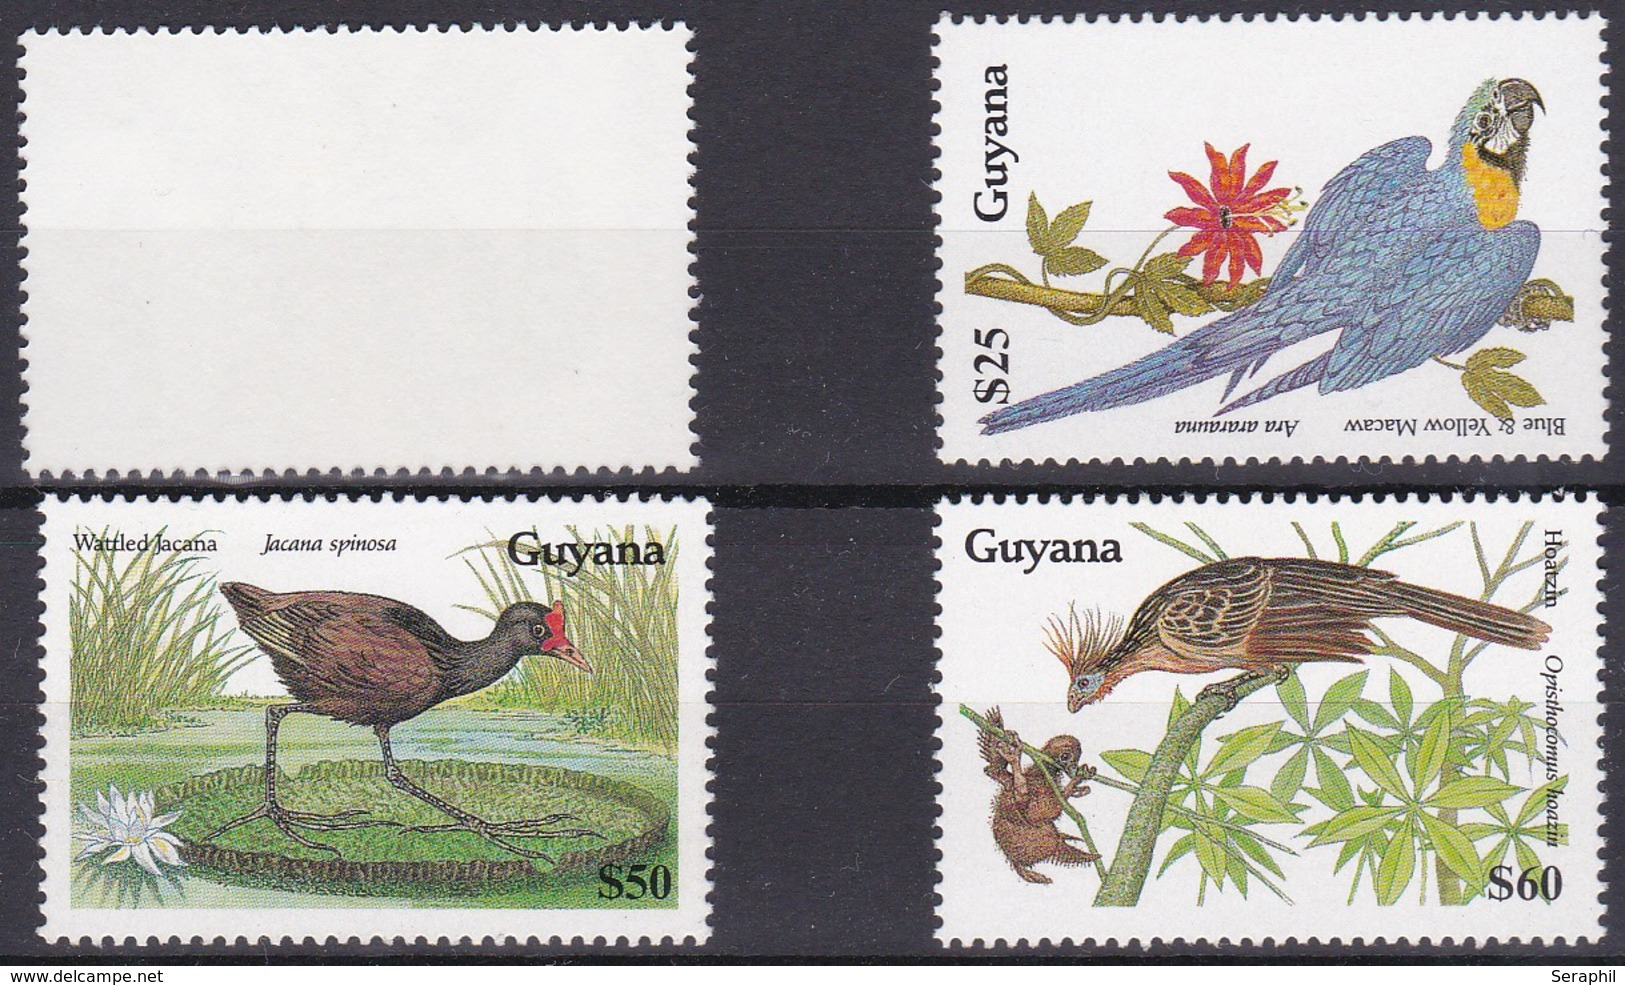 The Gambia - Oiseaux  - 1990 - Timbres N° 2156/9 - XX- 4valeurs - Gambie (1965-...)